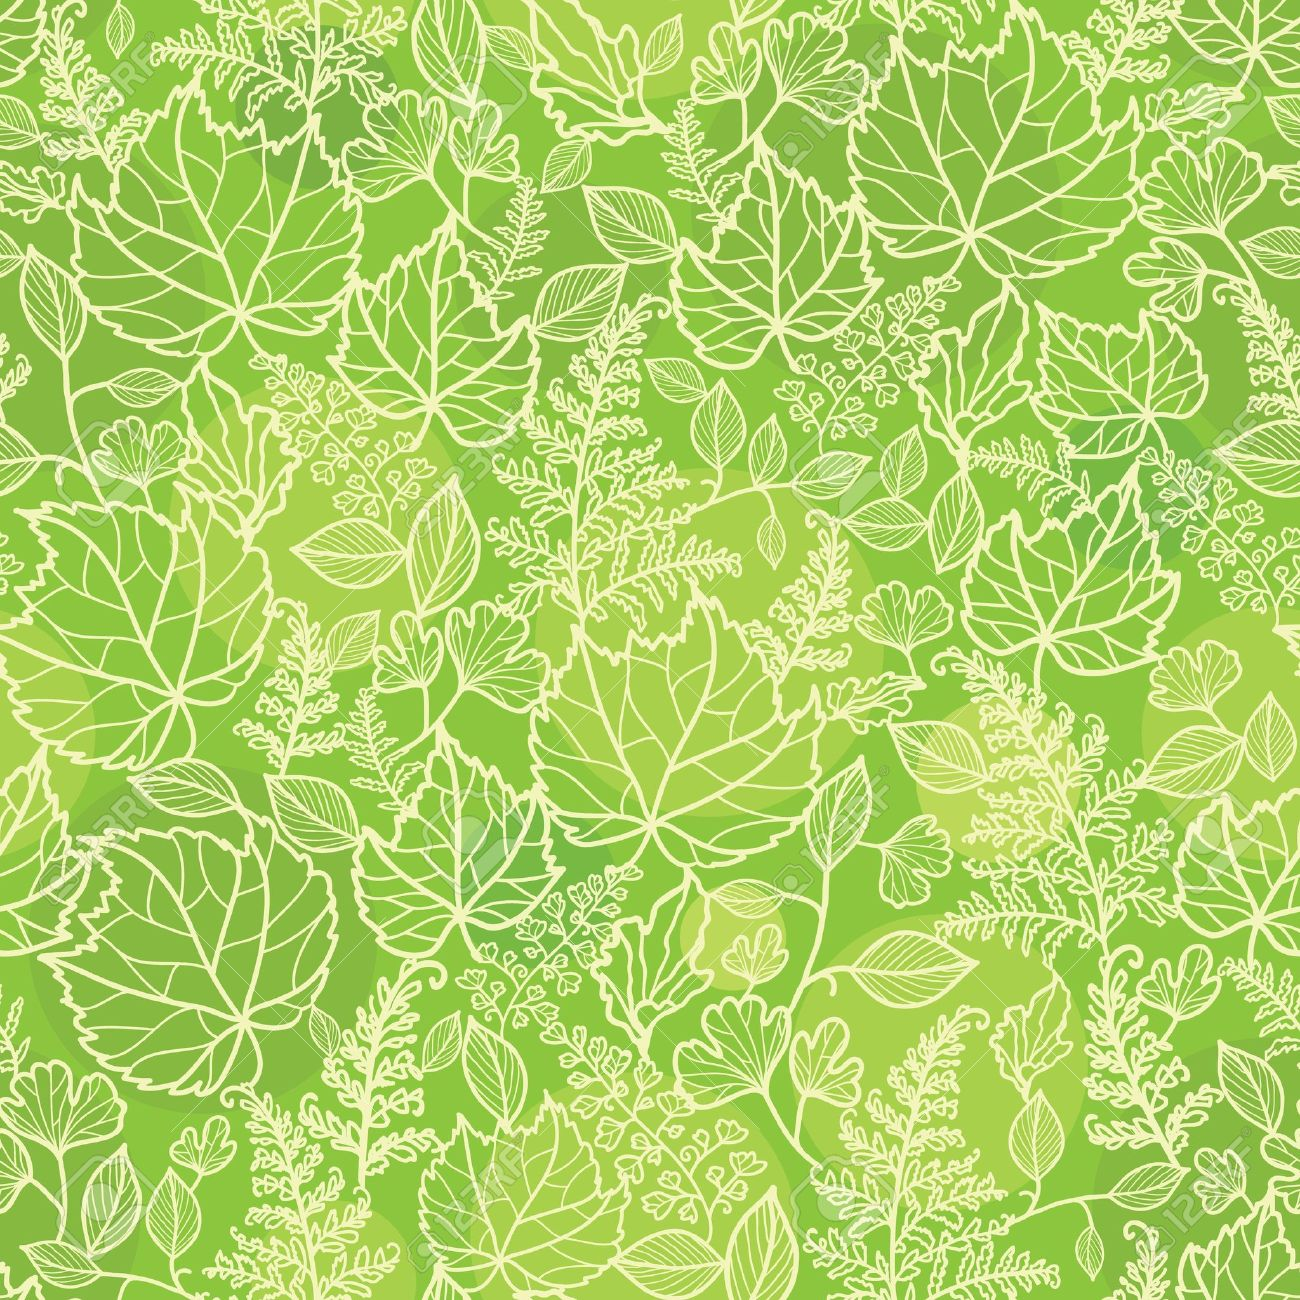 Green leaves lineart texture seamless pattern background Stock Vector - 20790841